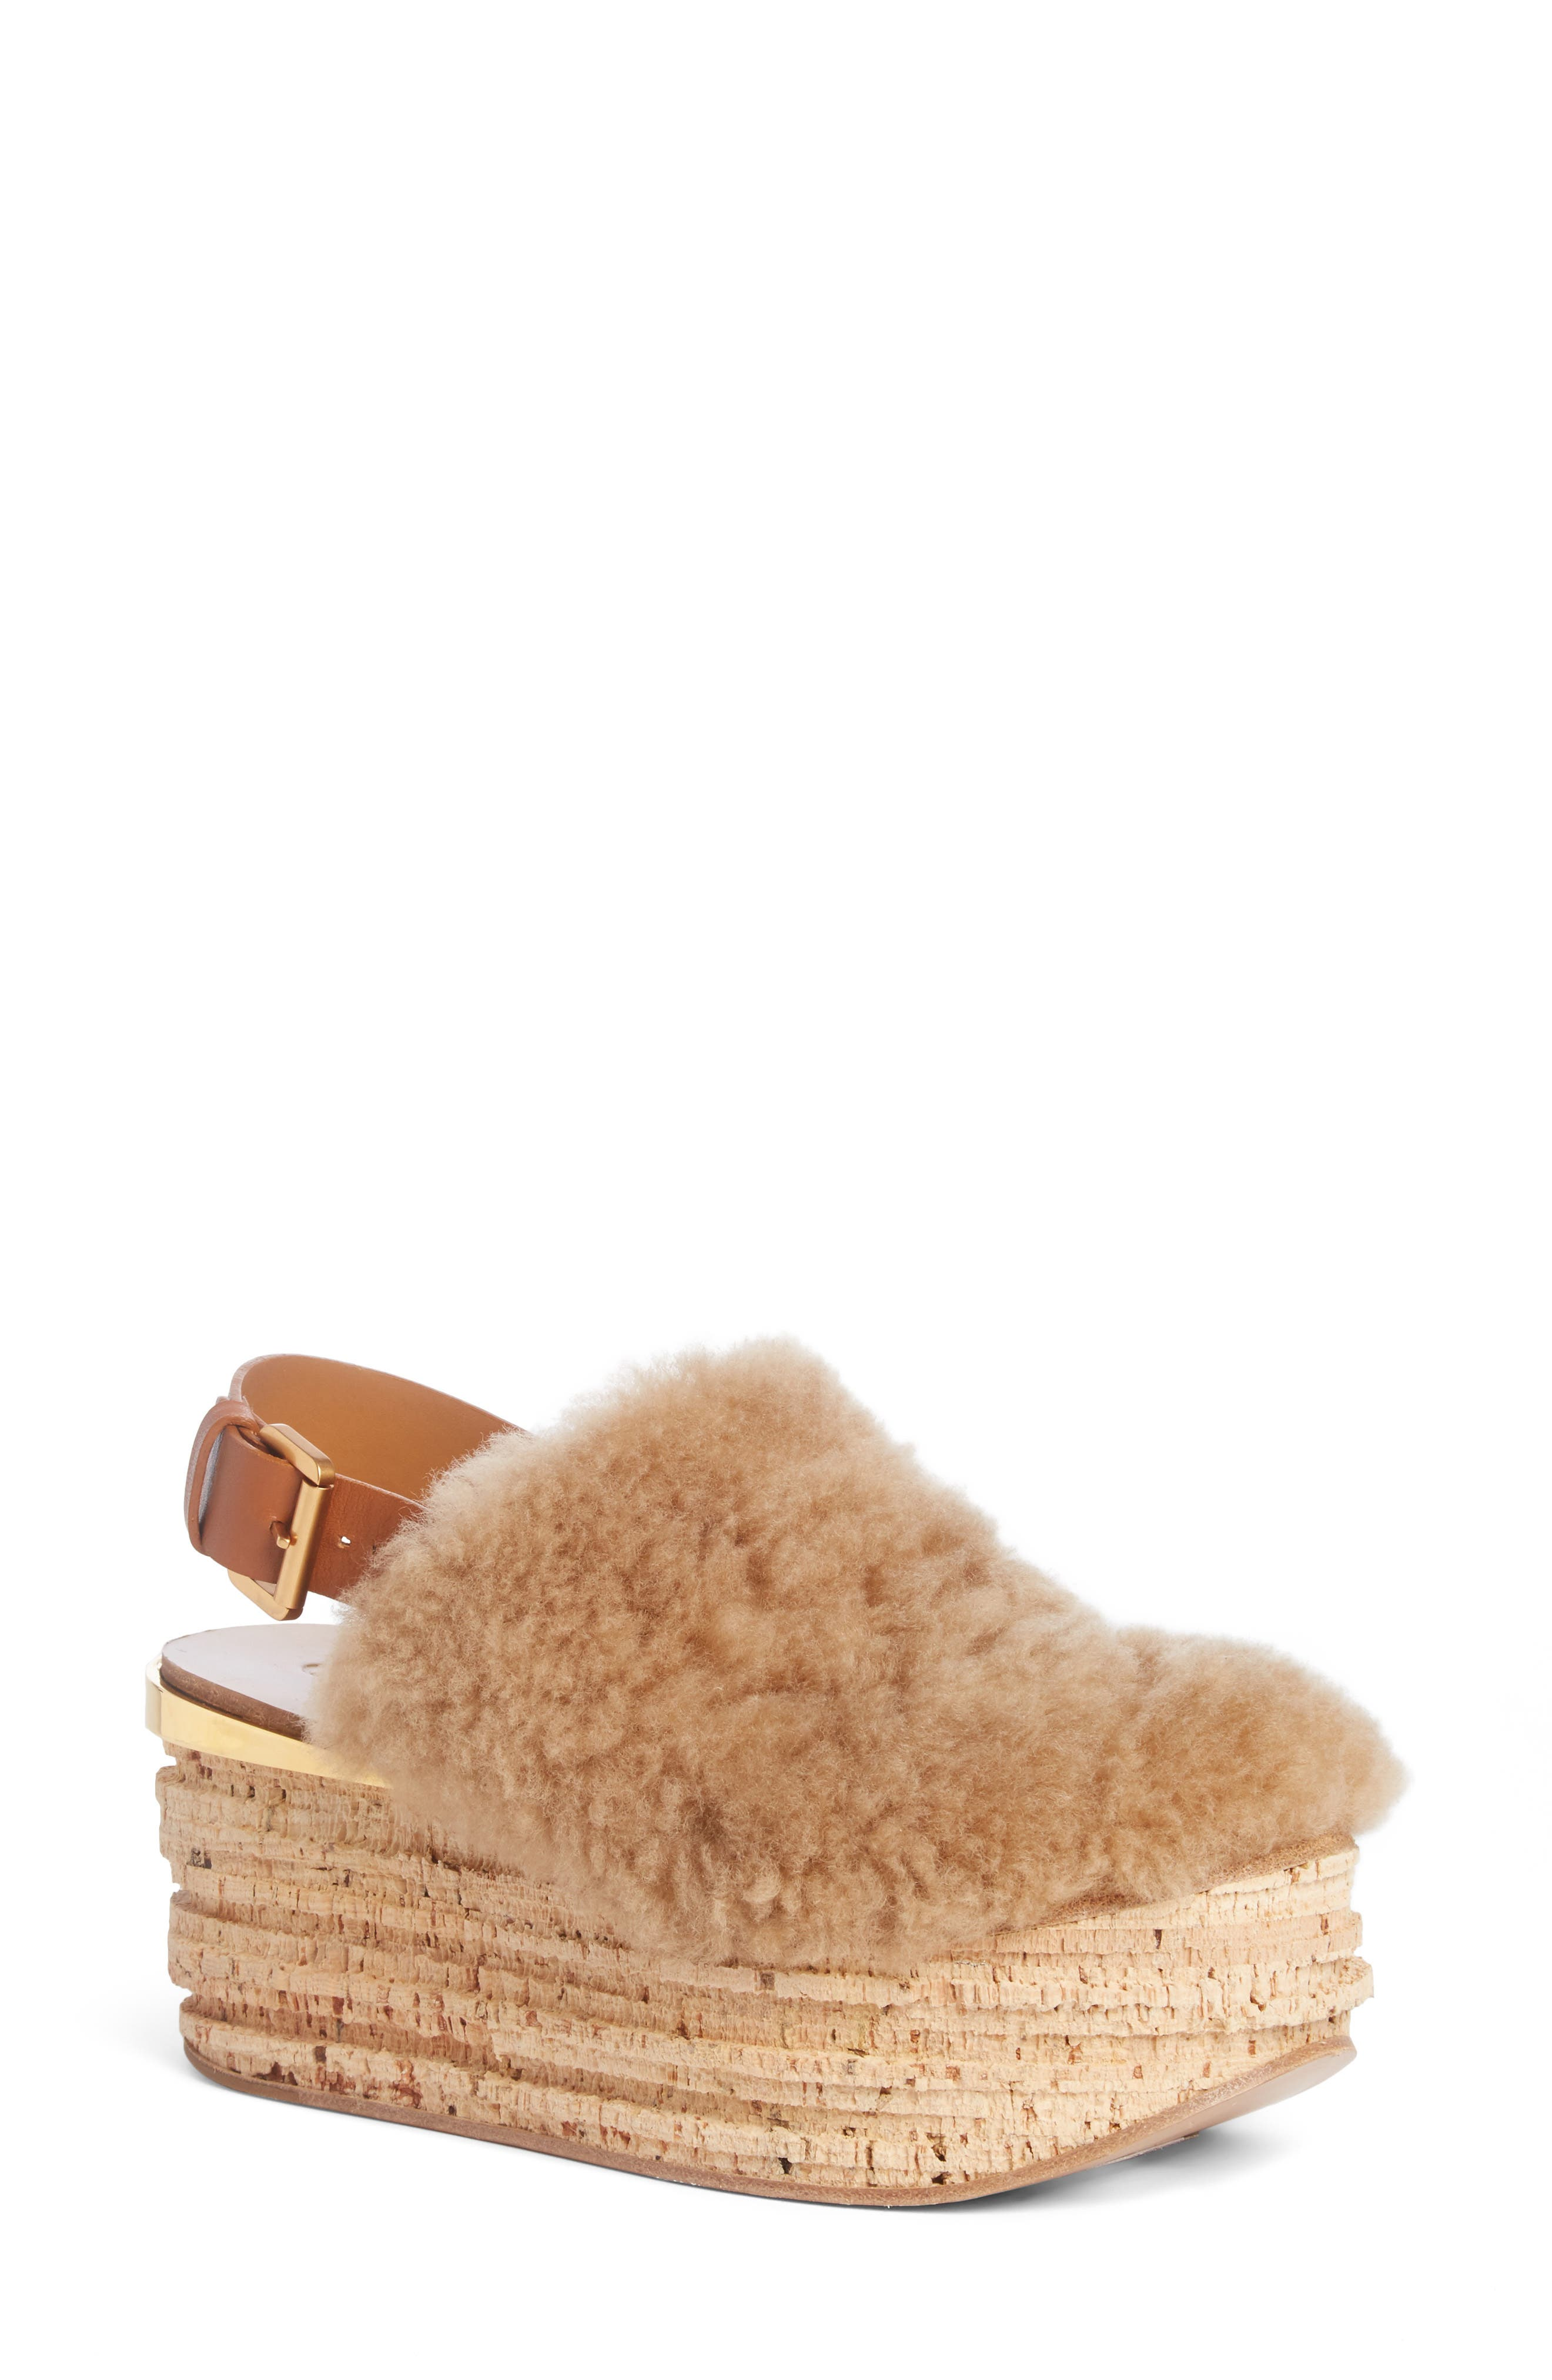 Chloé Camille Genuine Shearling Slingback Platform Wedge (Women)